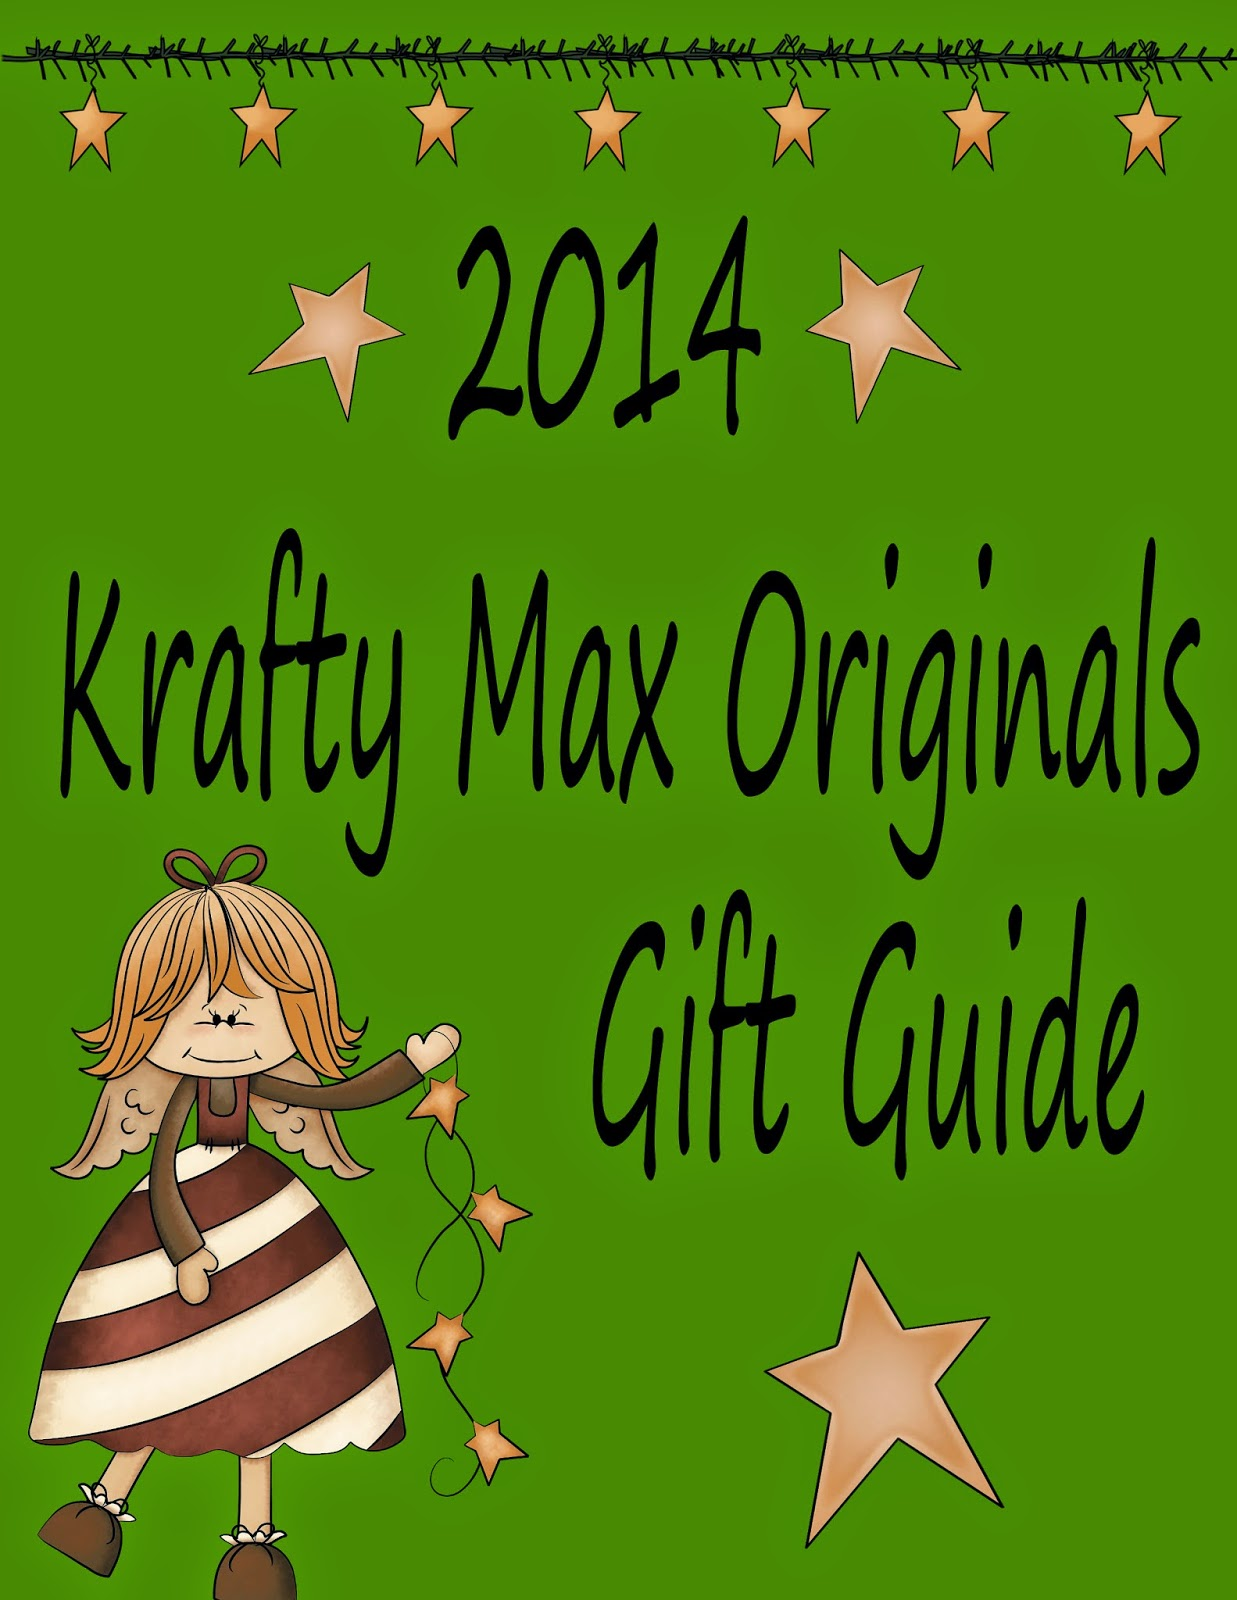 http://slipp.it/KraftyMaxOriginals/179929-2014-krafty-max-originals-gift-guide